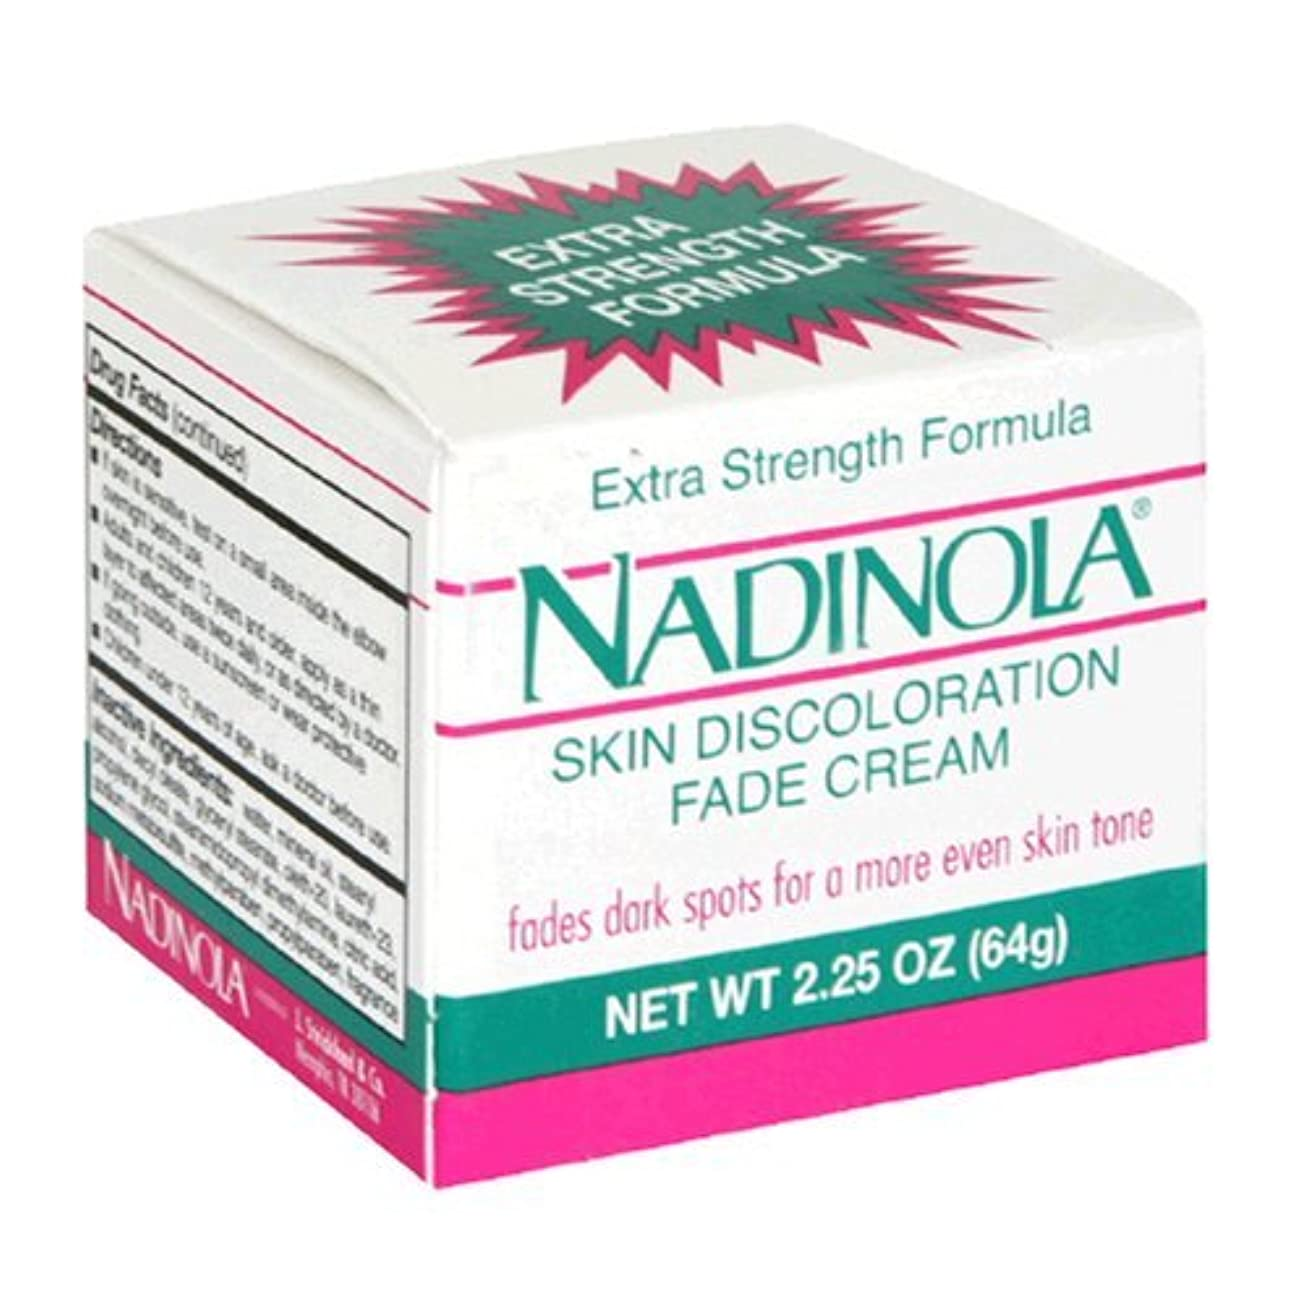 腐食する望遠鏡豊富にNadinola Discoloration Fade Cream 2.25oz Extra Strength (並行輸入品)